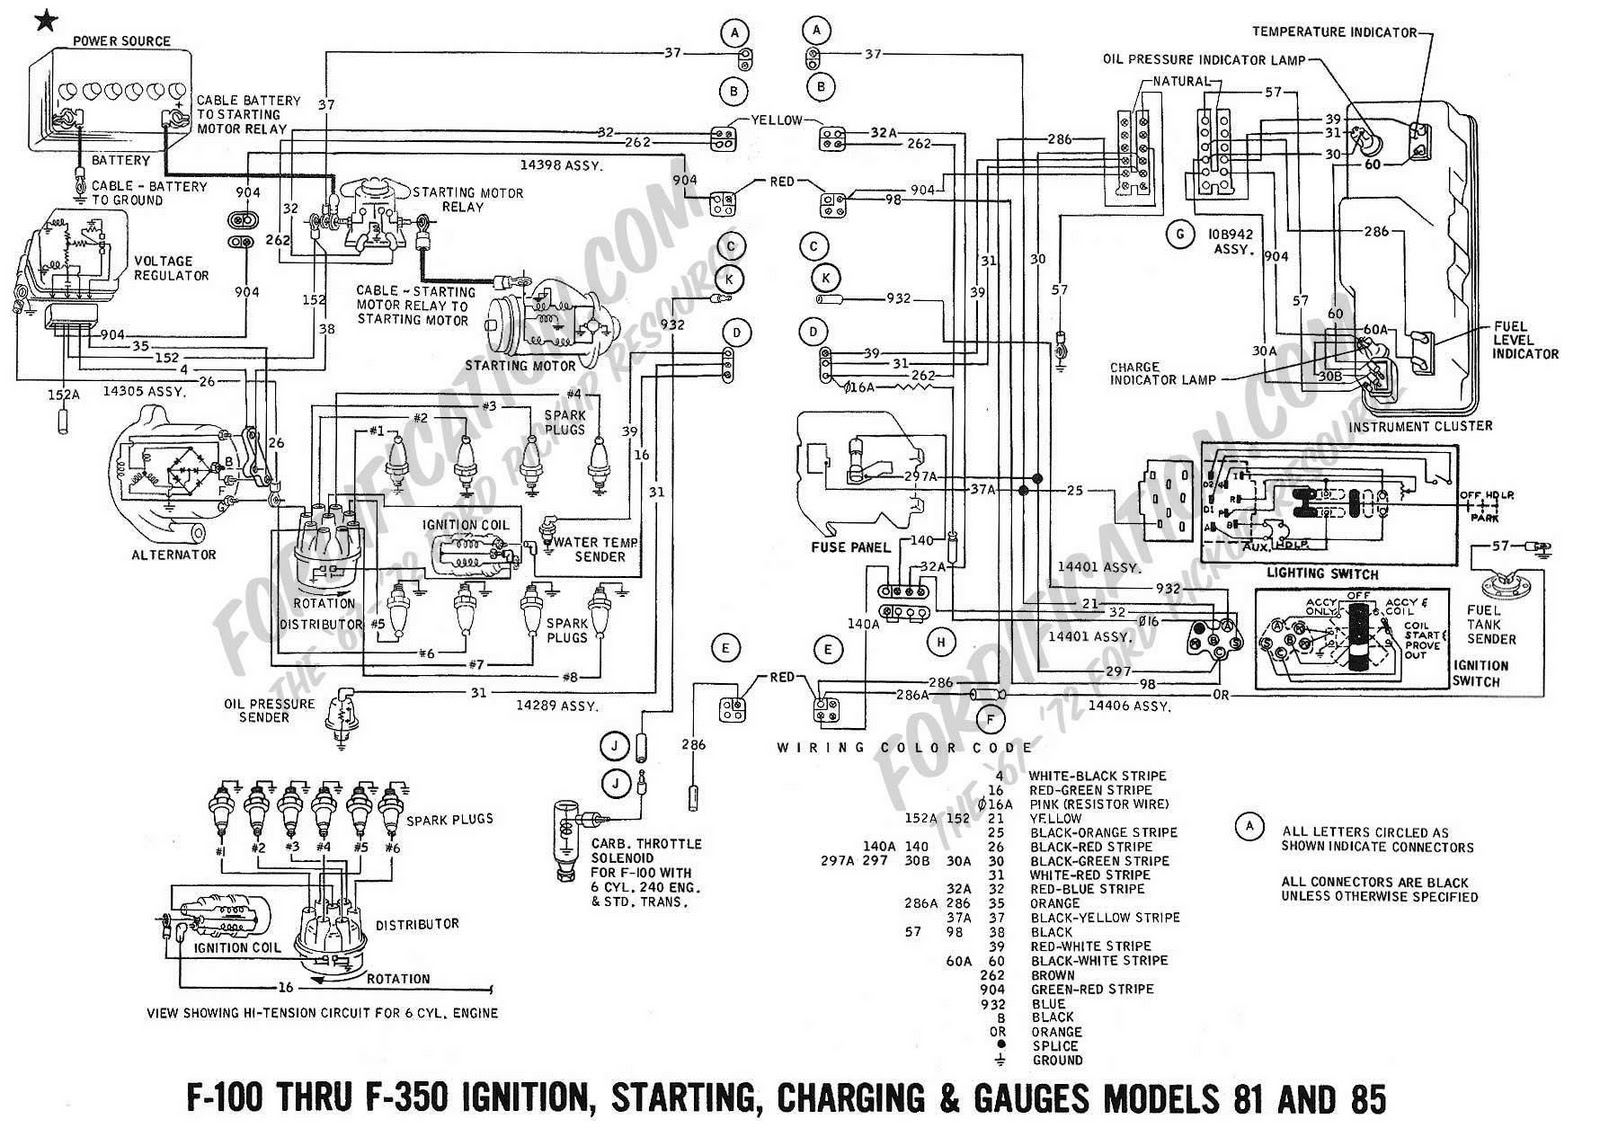 1965 f100 ignition switch wiring diagram 1965 el camino ignition switch wiring diagram